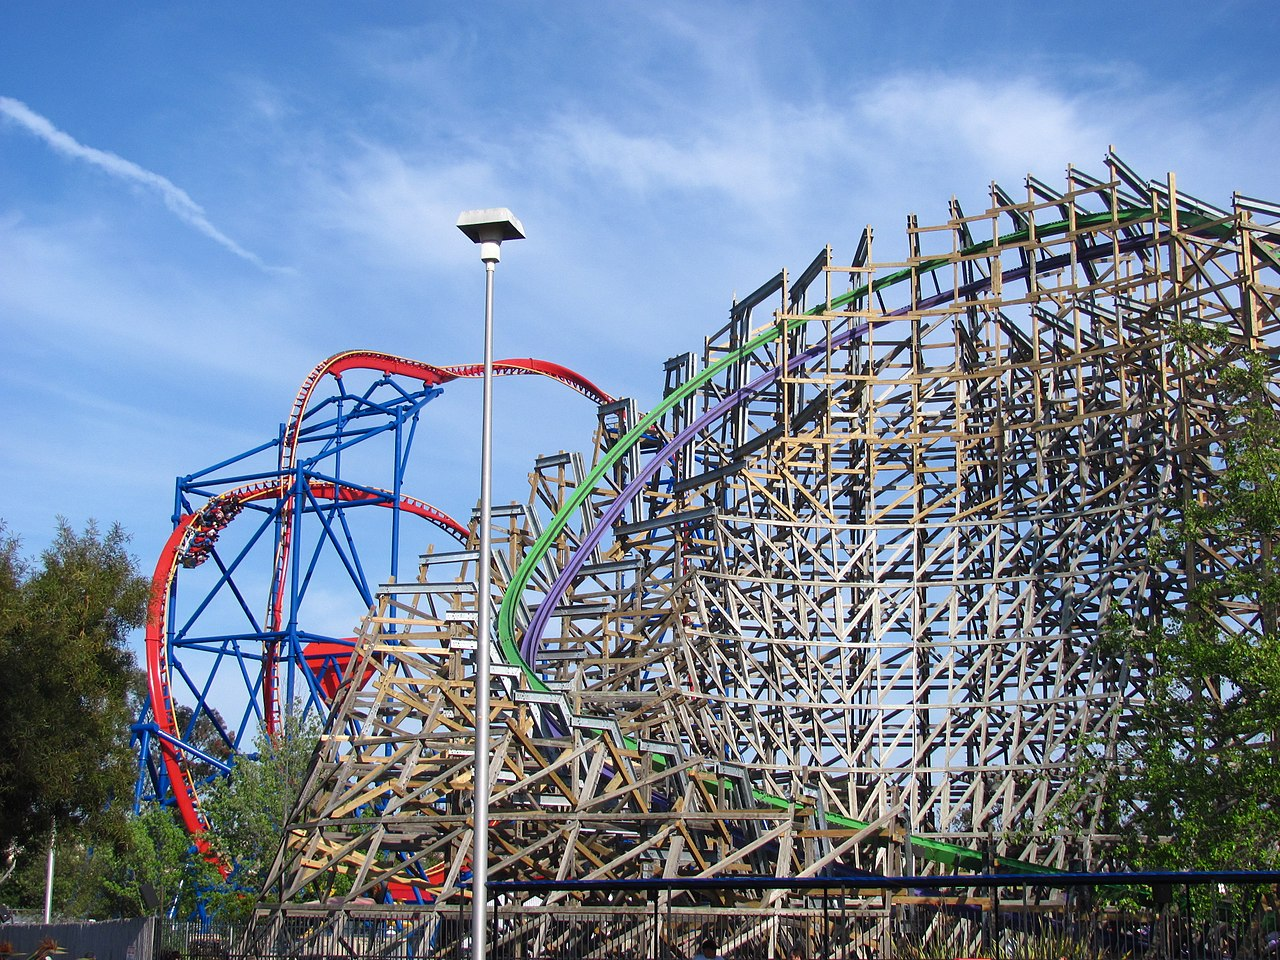 Famous Theme Park In California-Six Flags Discovery Kingdom